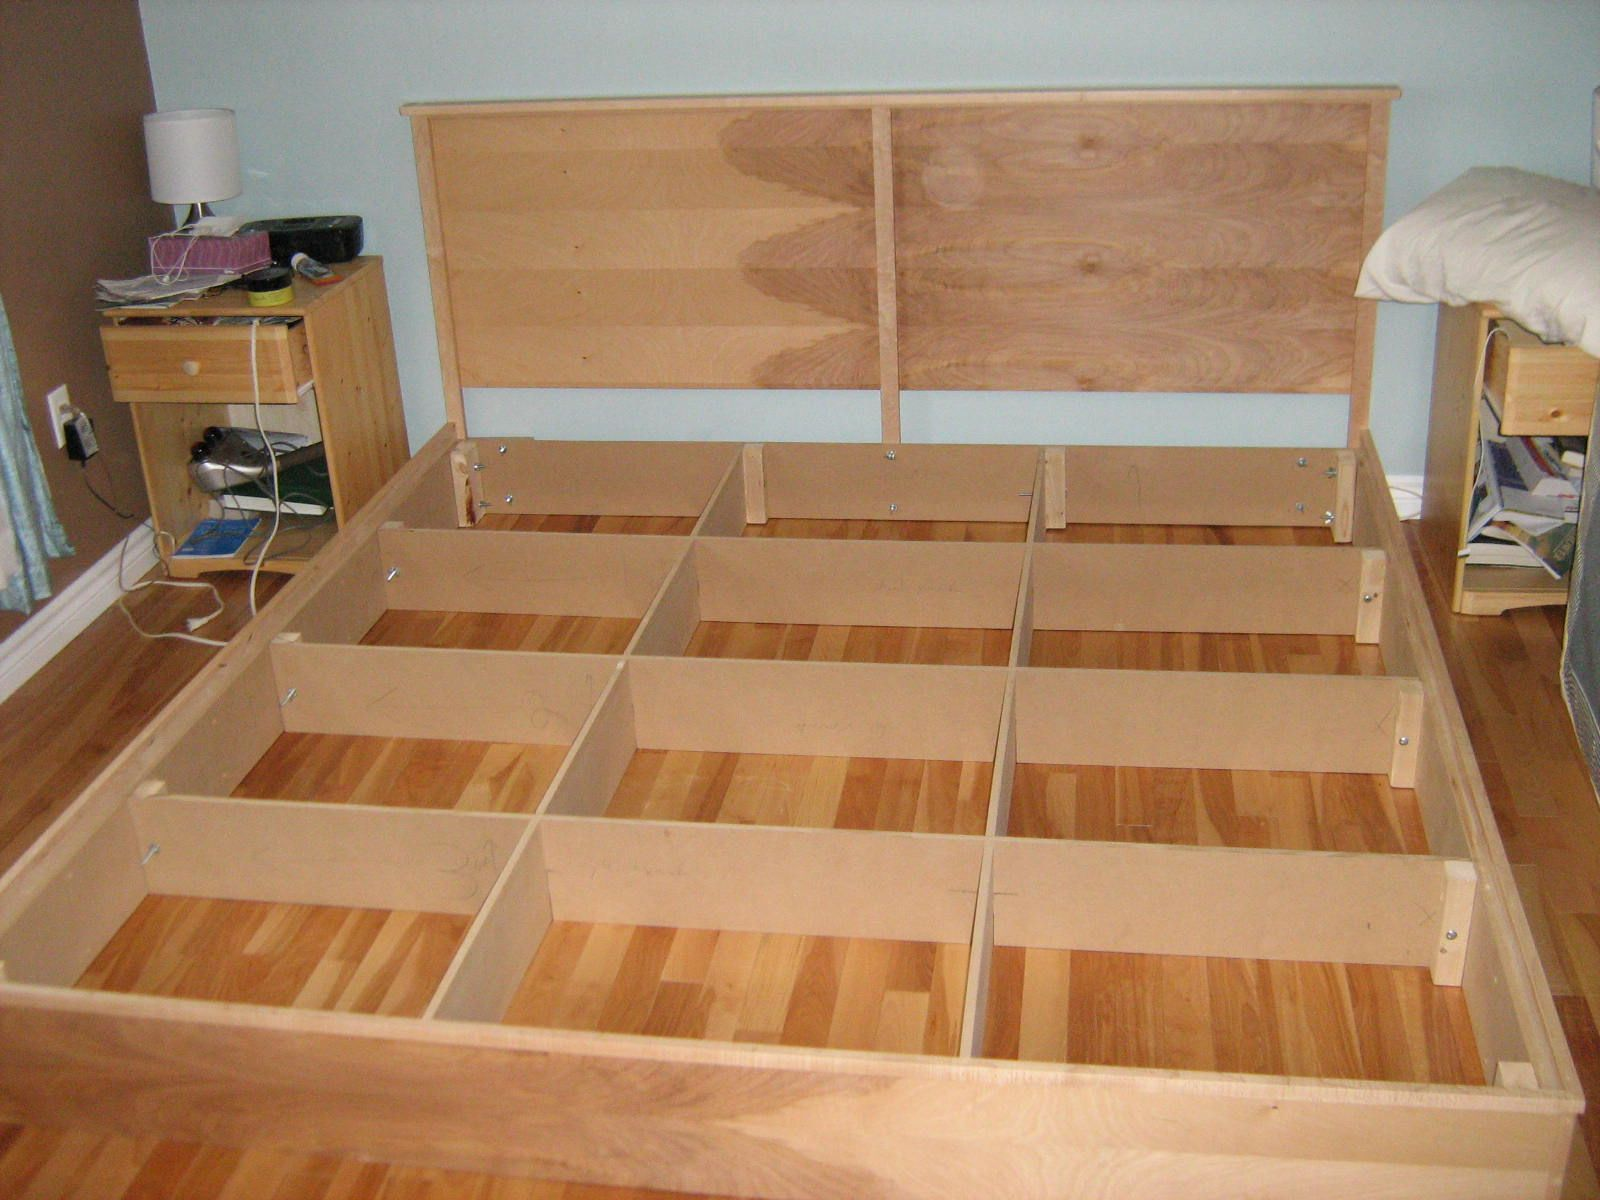 Building the Bed